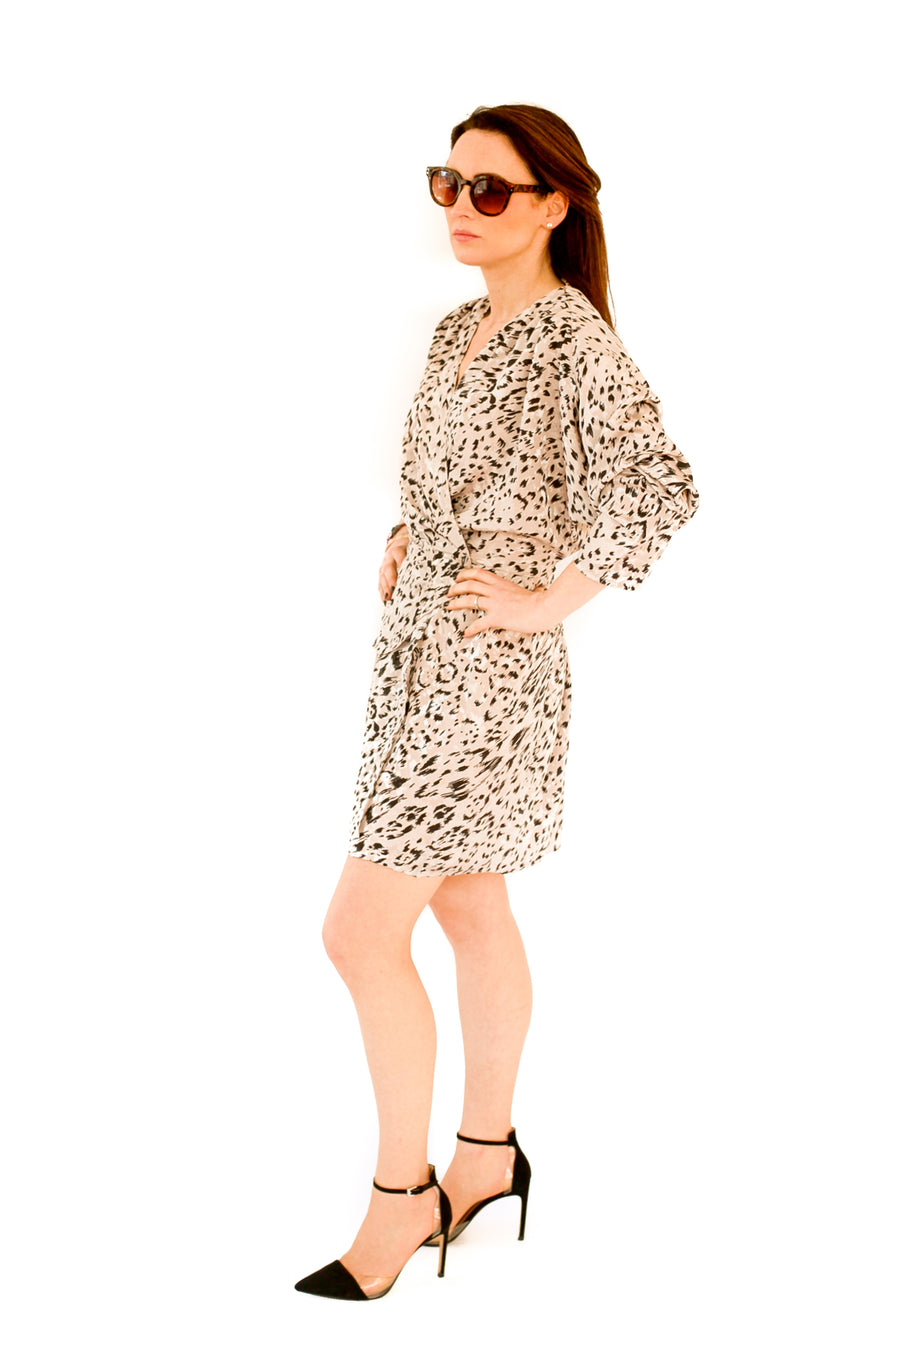 Vintage animal print party dress